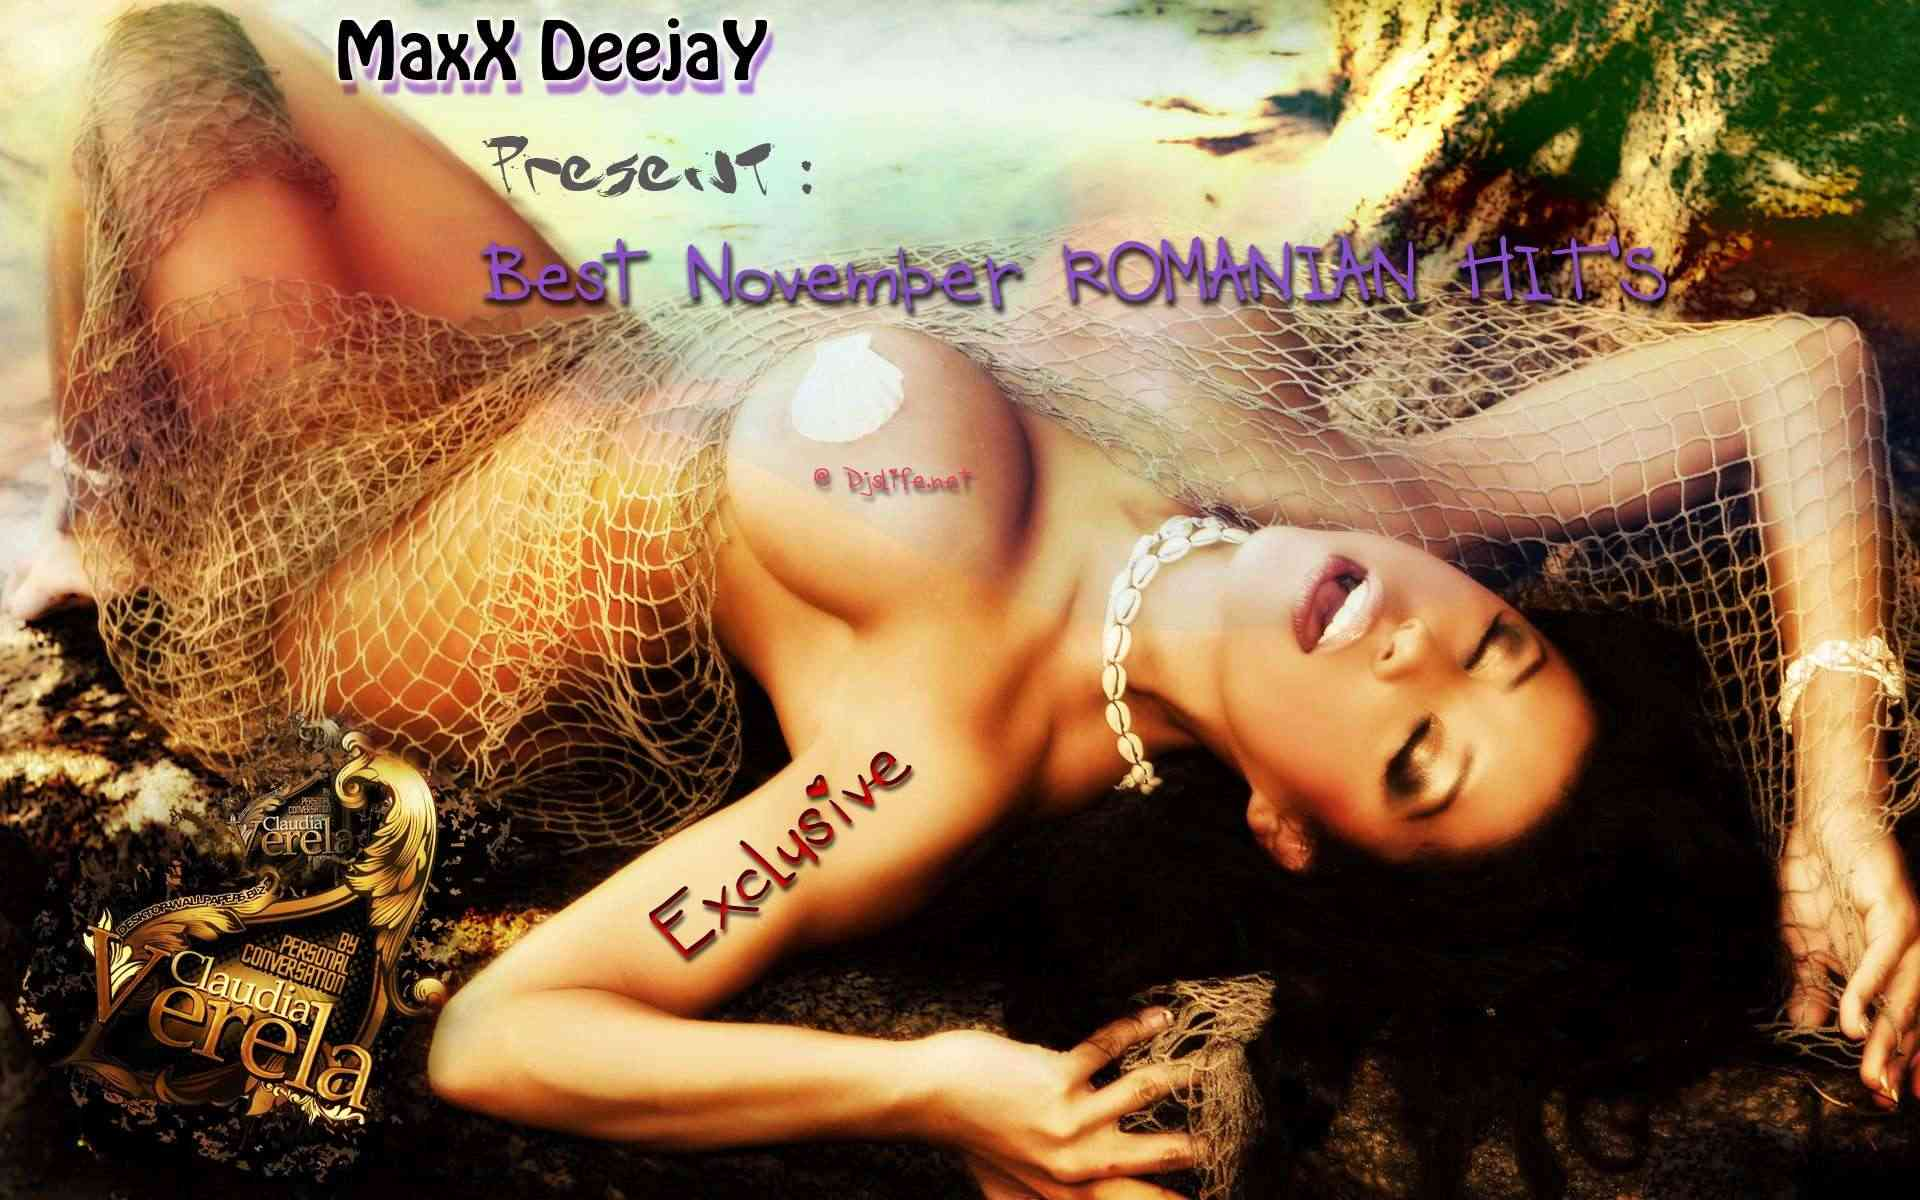 November Best Romanian Hit's/ Compiled by MaxX DeejaY